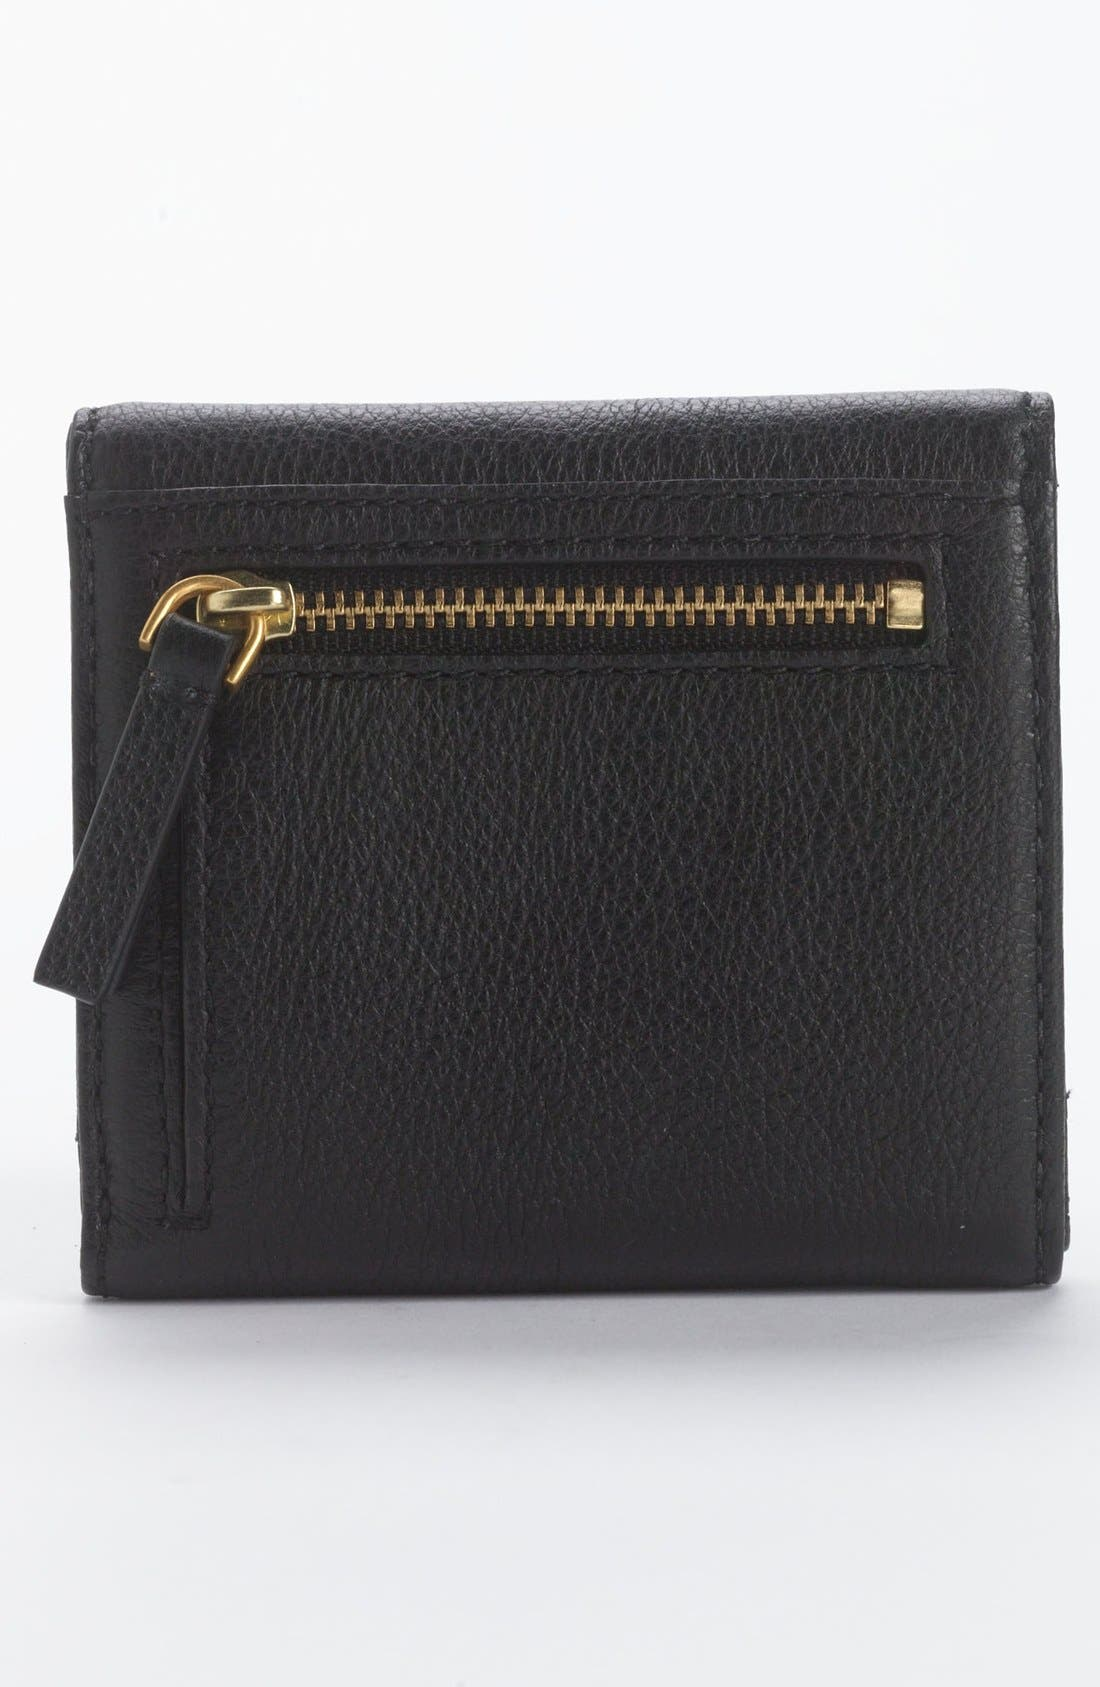 MARC BY MARC JACOBS Bifold French Wallet,                             Alternate thumbnail 2, color,                             001